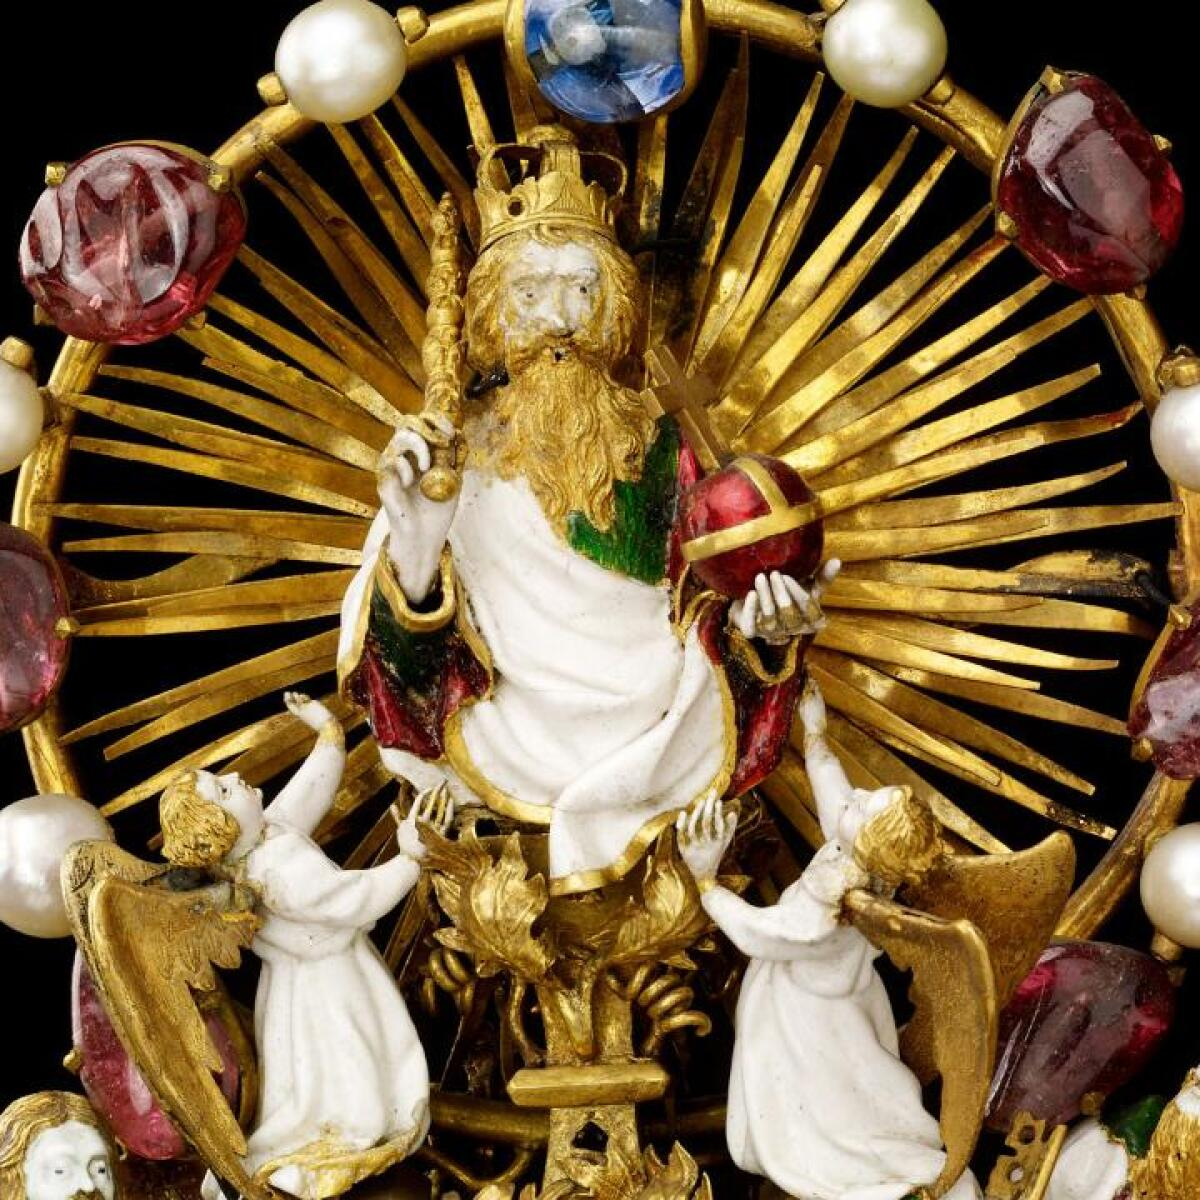 The Holy Thorn Reliquary, One of the Greatest Relics of Medieval Christianity